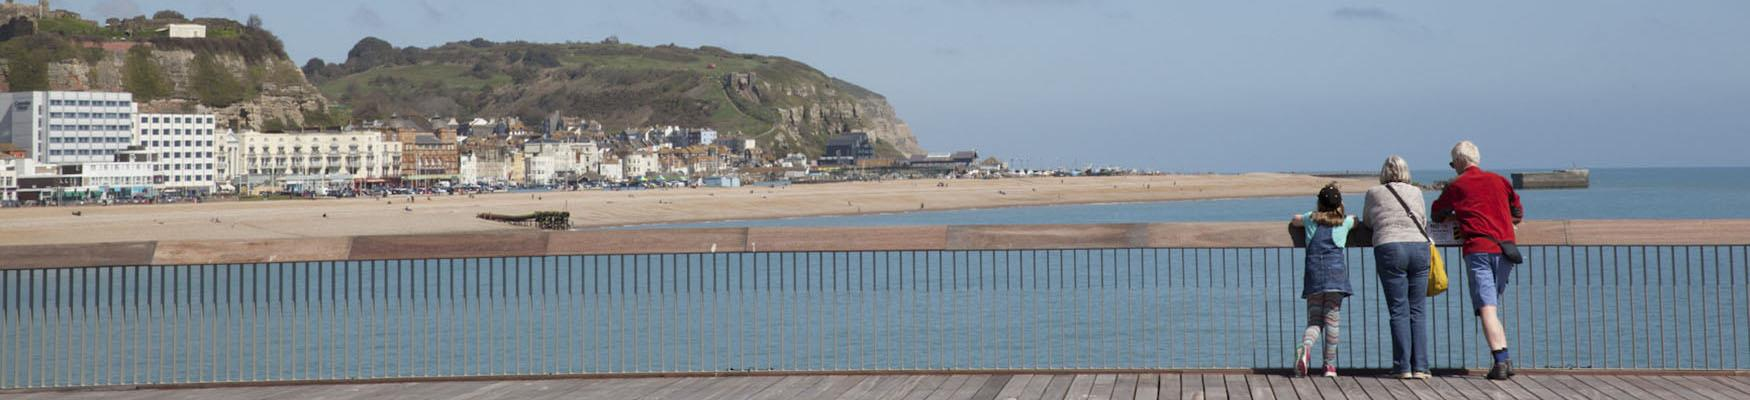 3 people standing on the pier looking at view of Hastings seaside and East hill